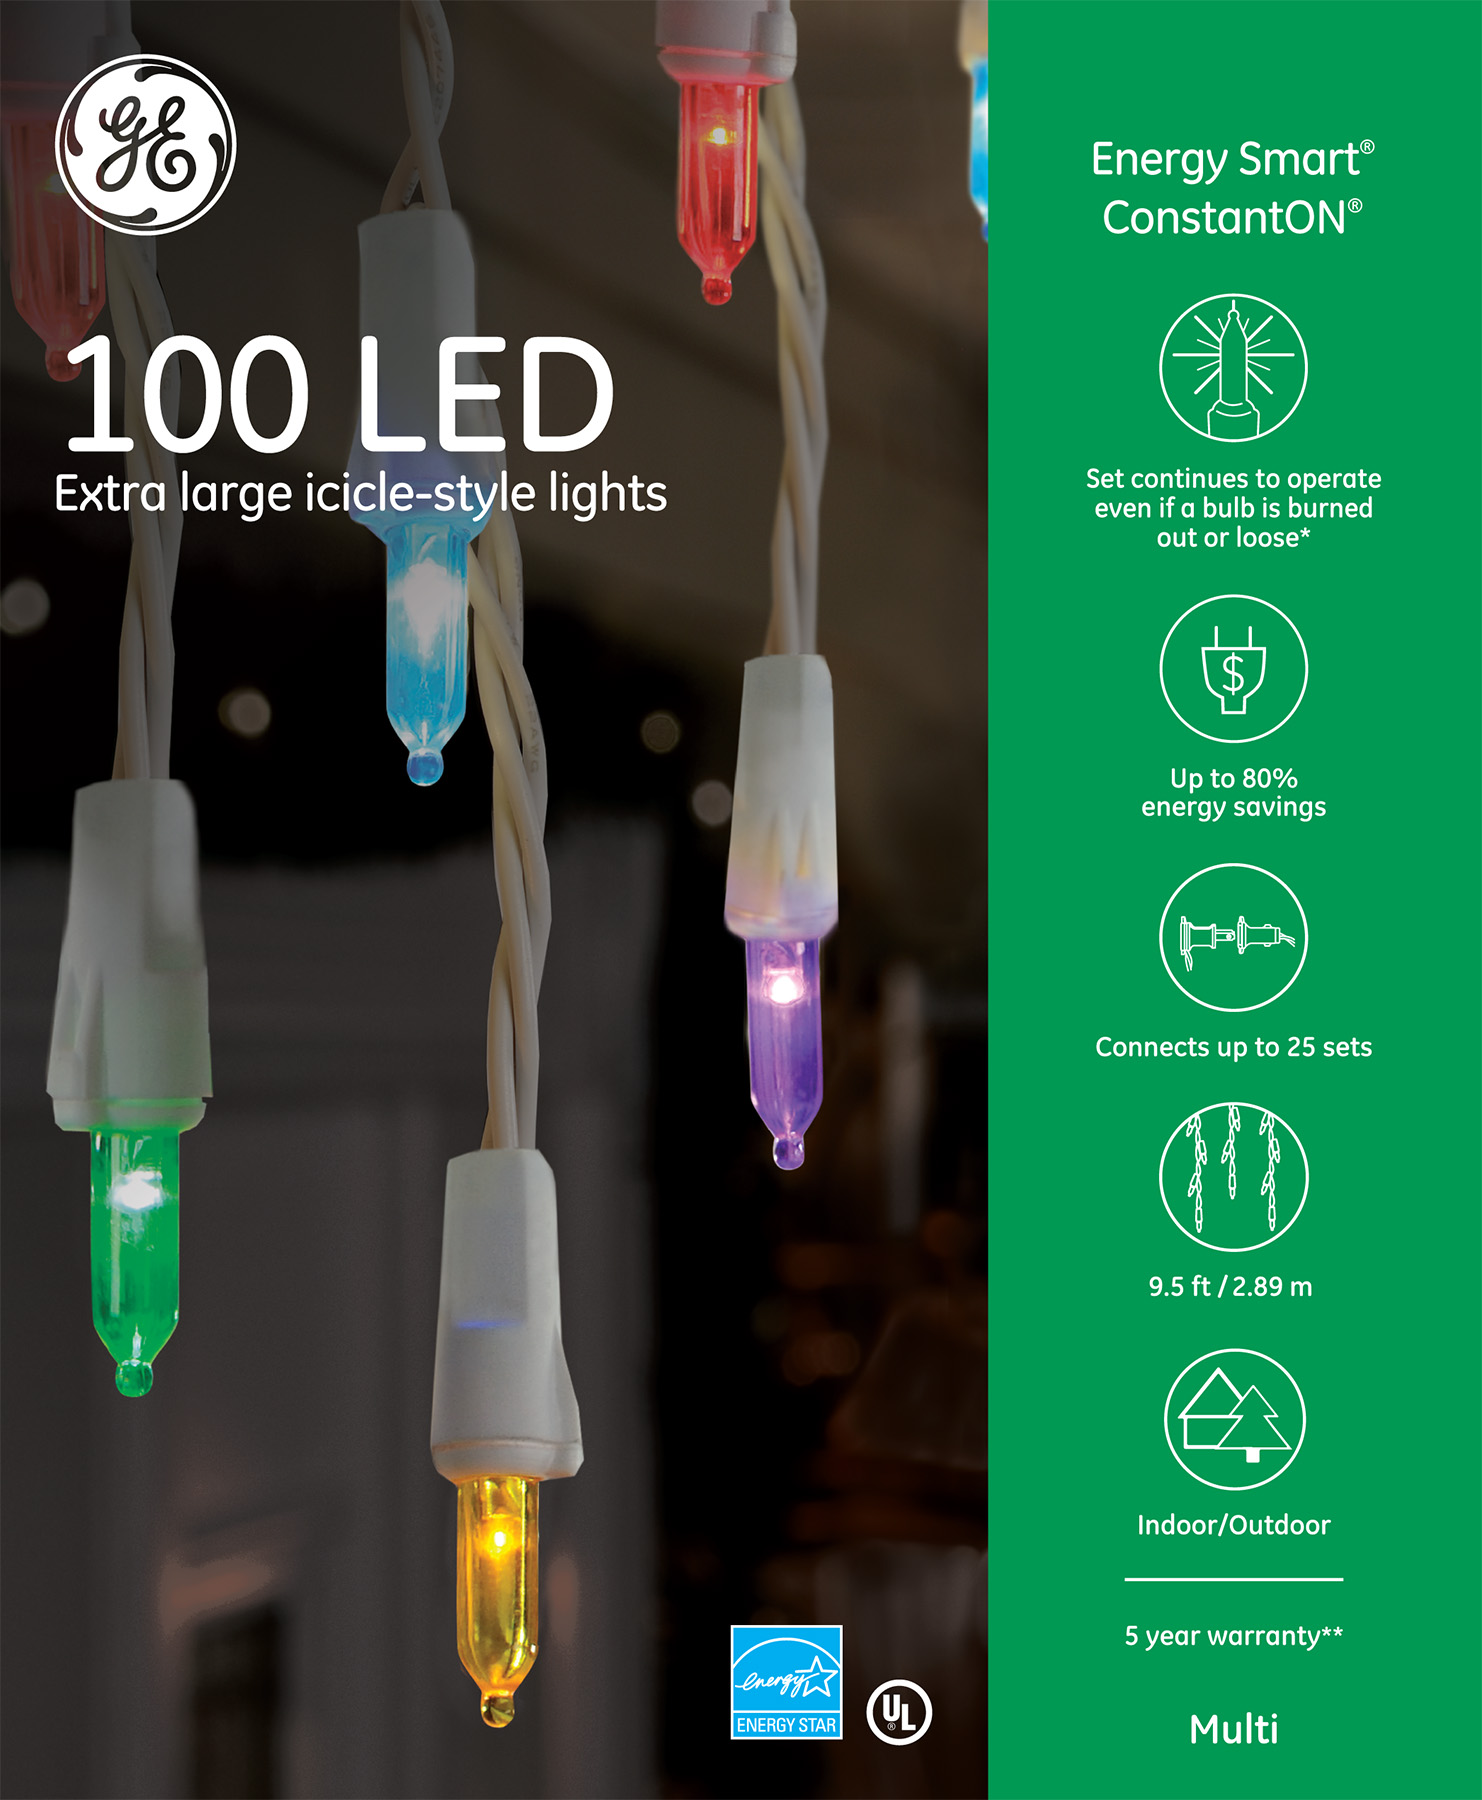 98855 - GE Energy Smart® LED Extra Large Icicle-Style Lights